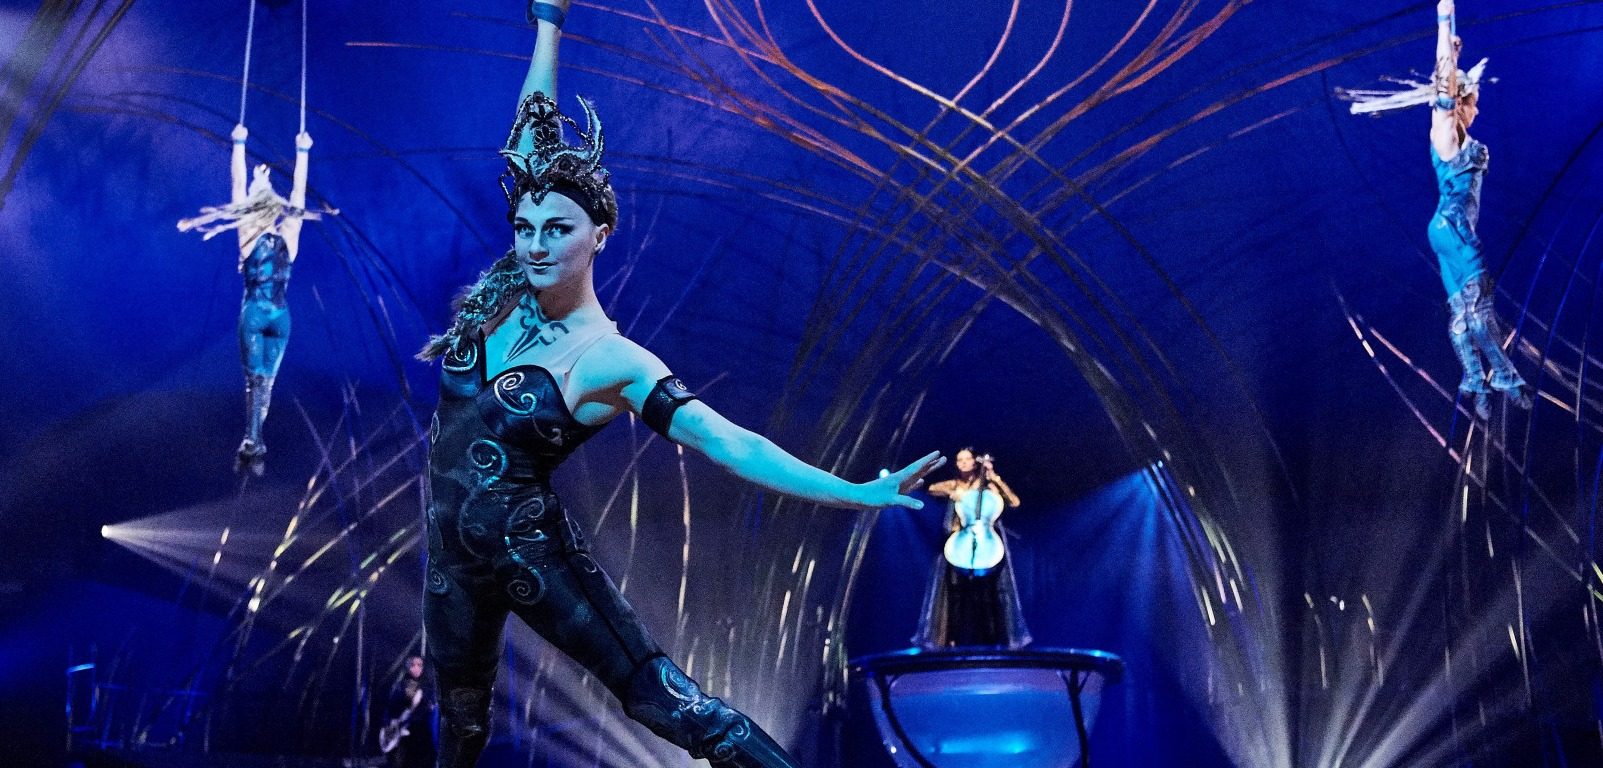 cirque du soleil acrobats and performers in costume in amaluna